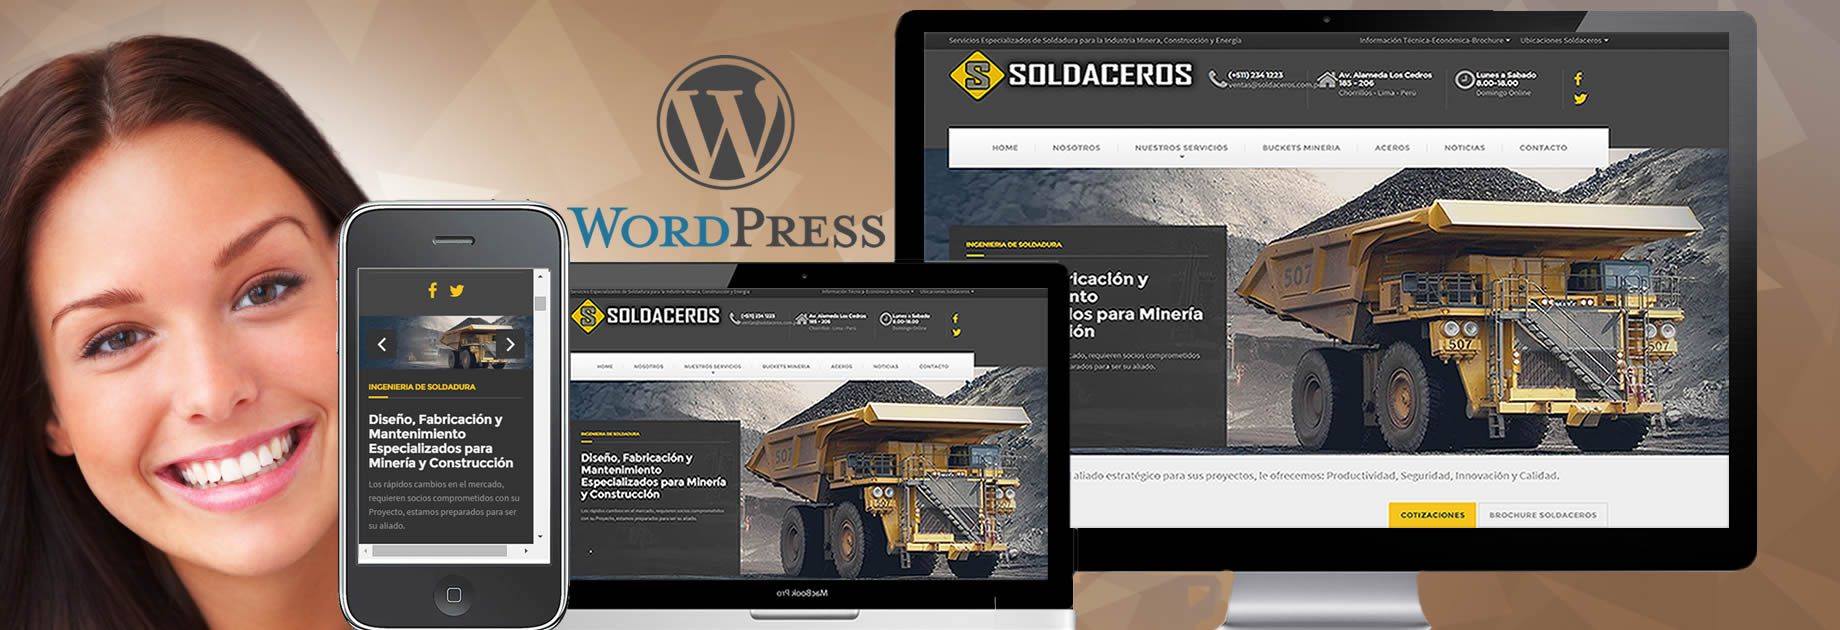 wordpress_peru1